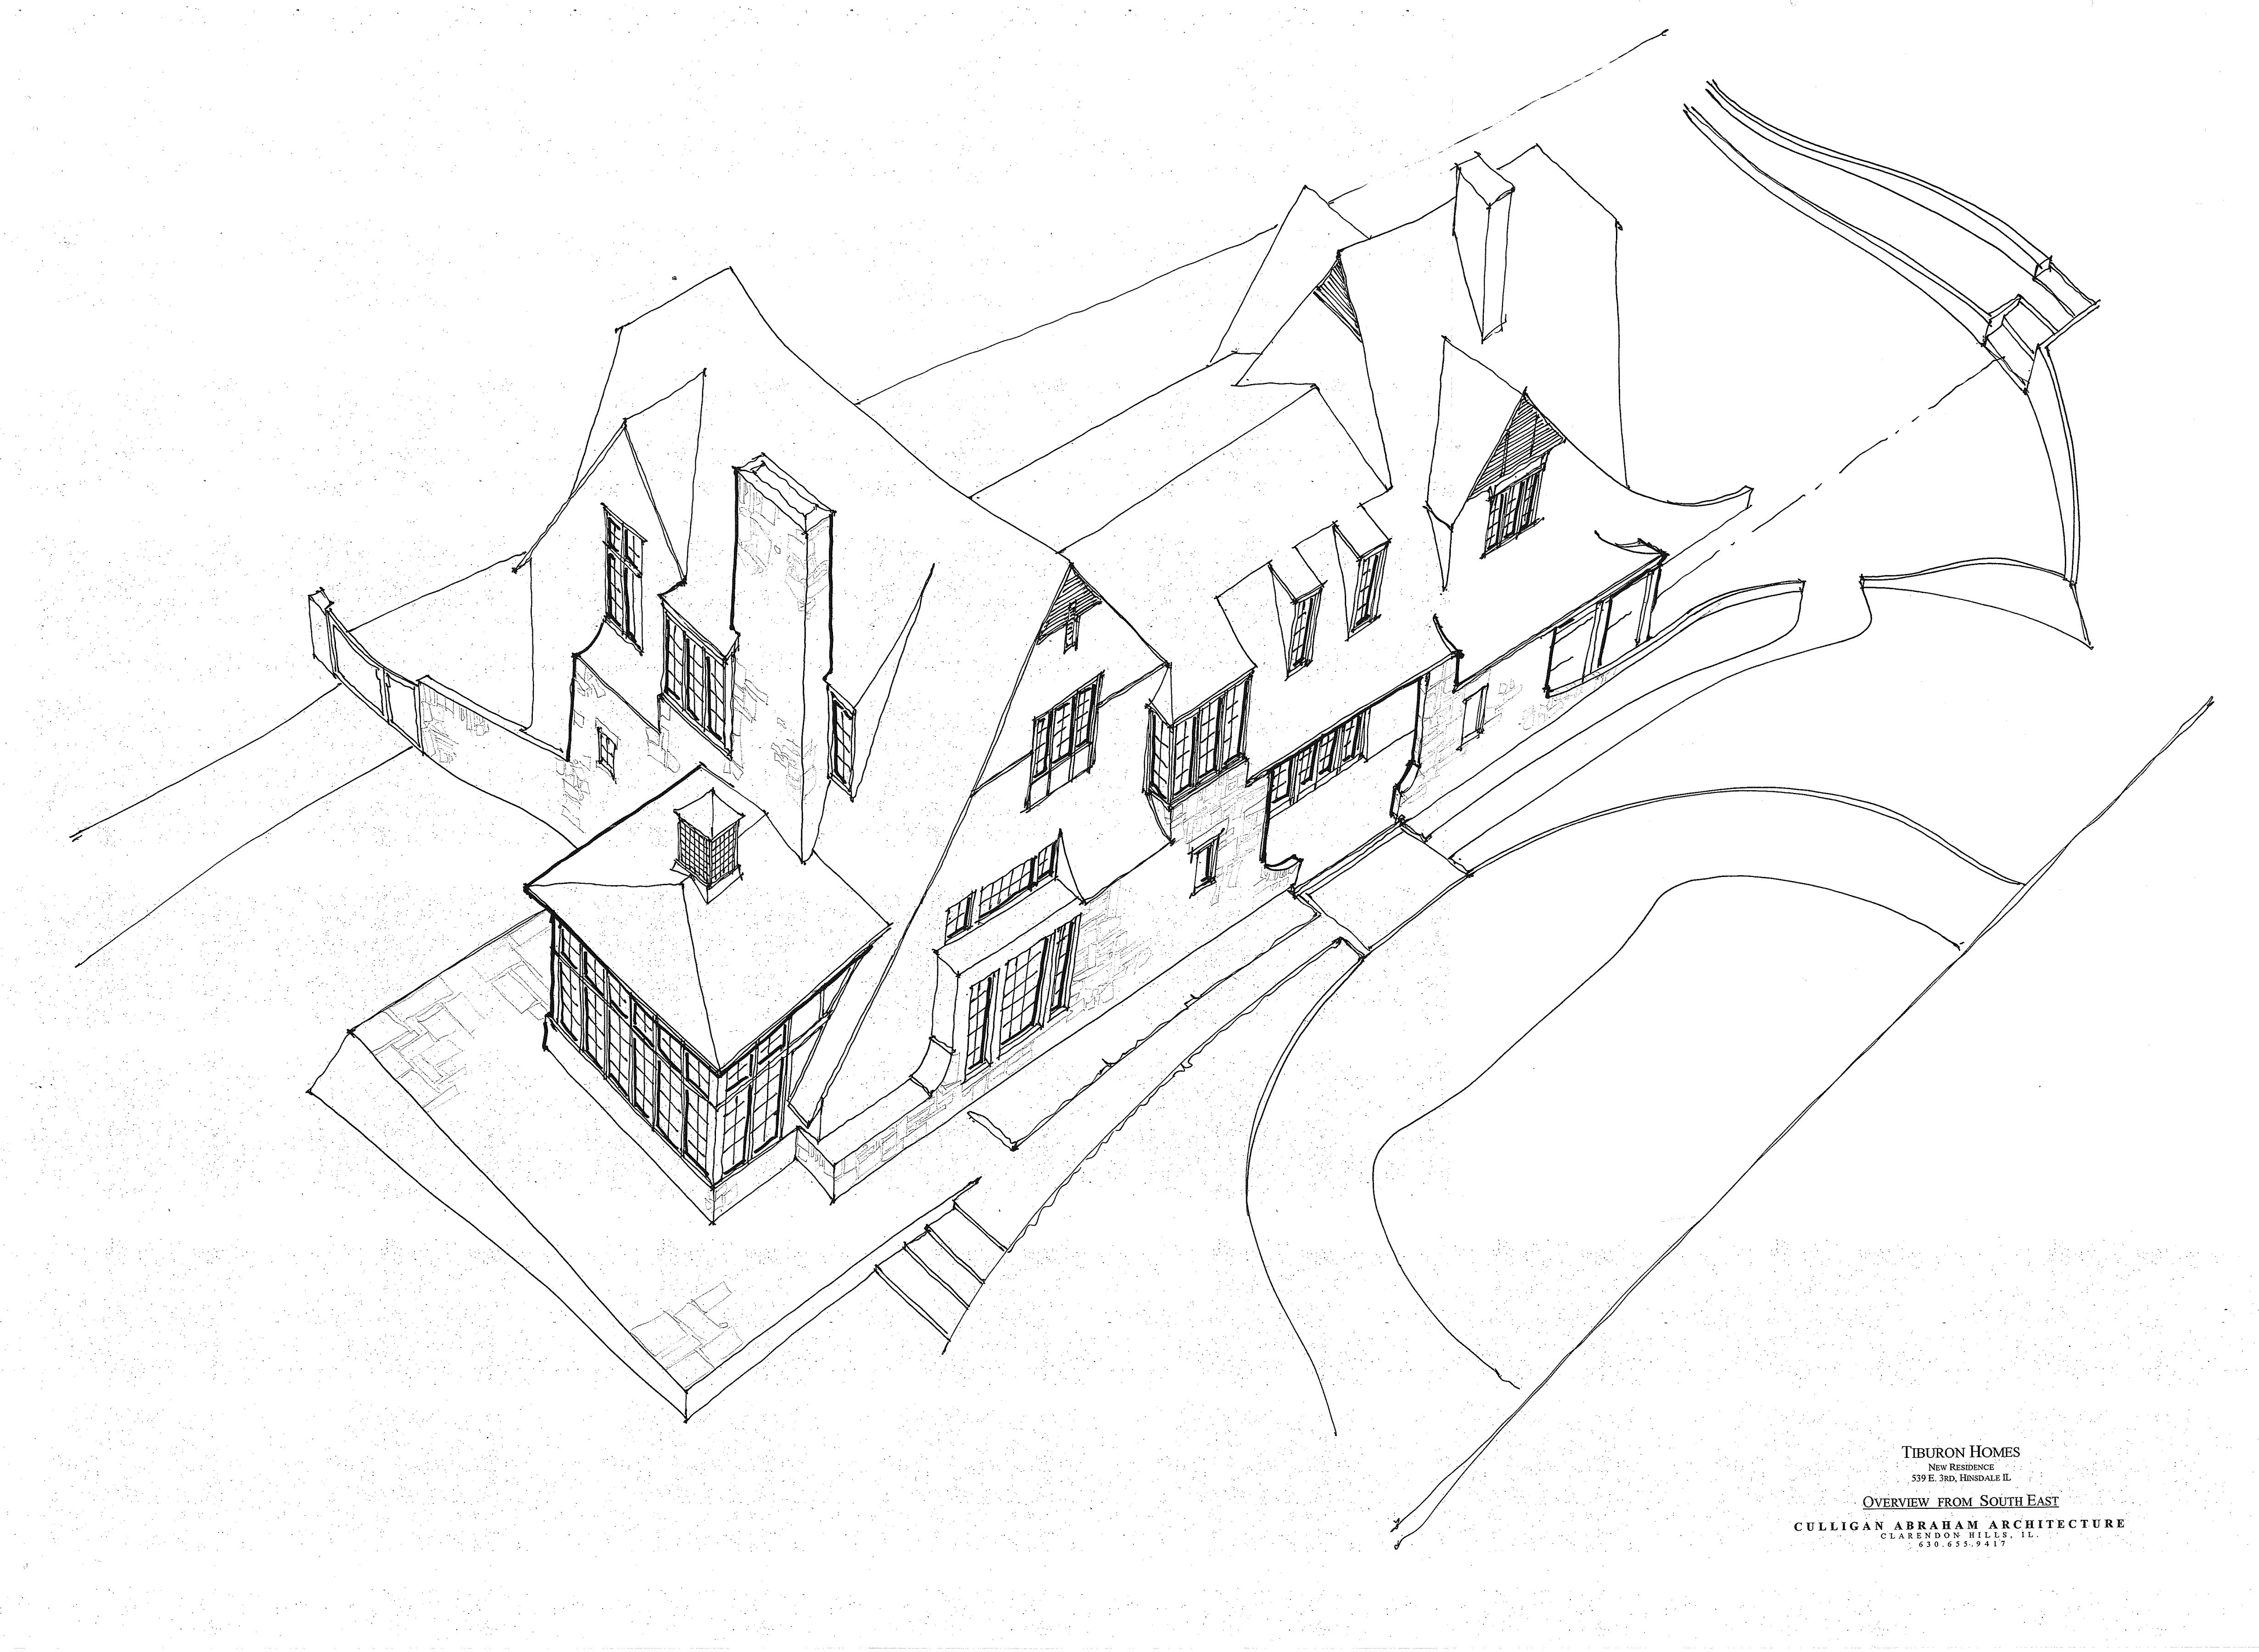 Sketches - Drawings - Chicago - Michael Abraham Architecture ...